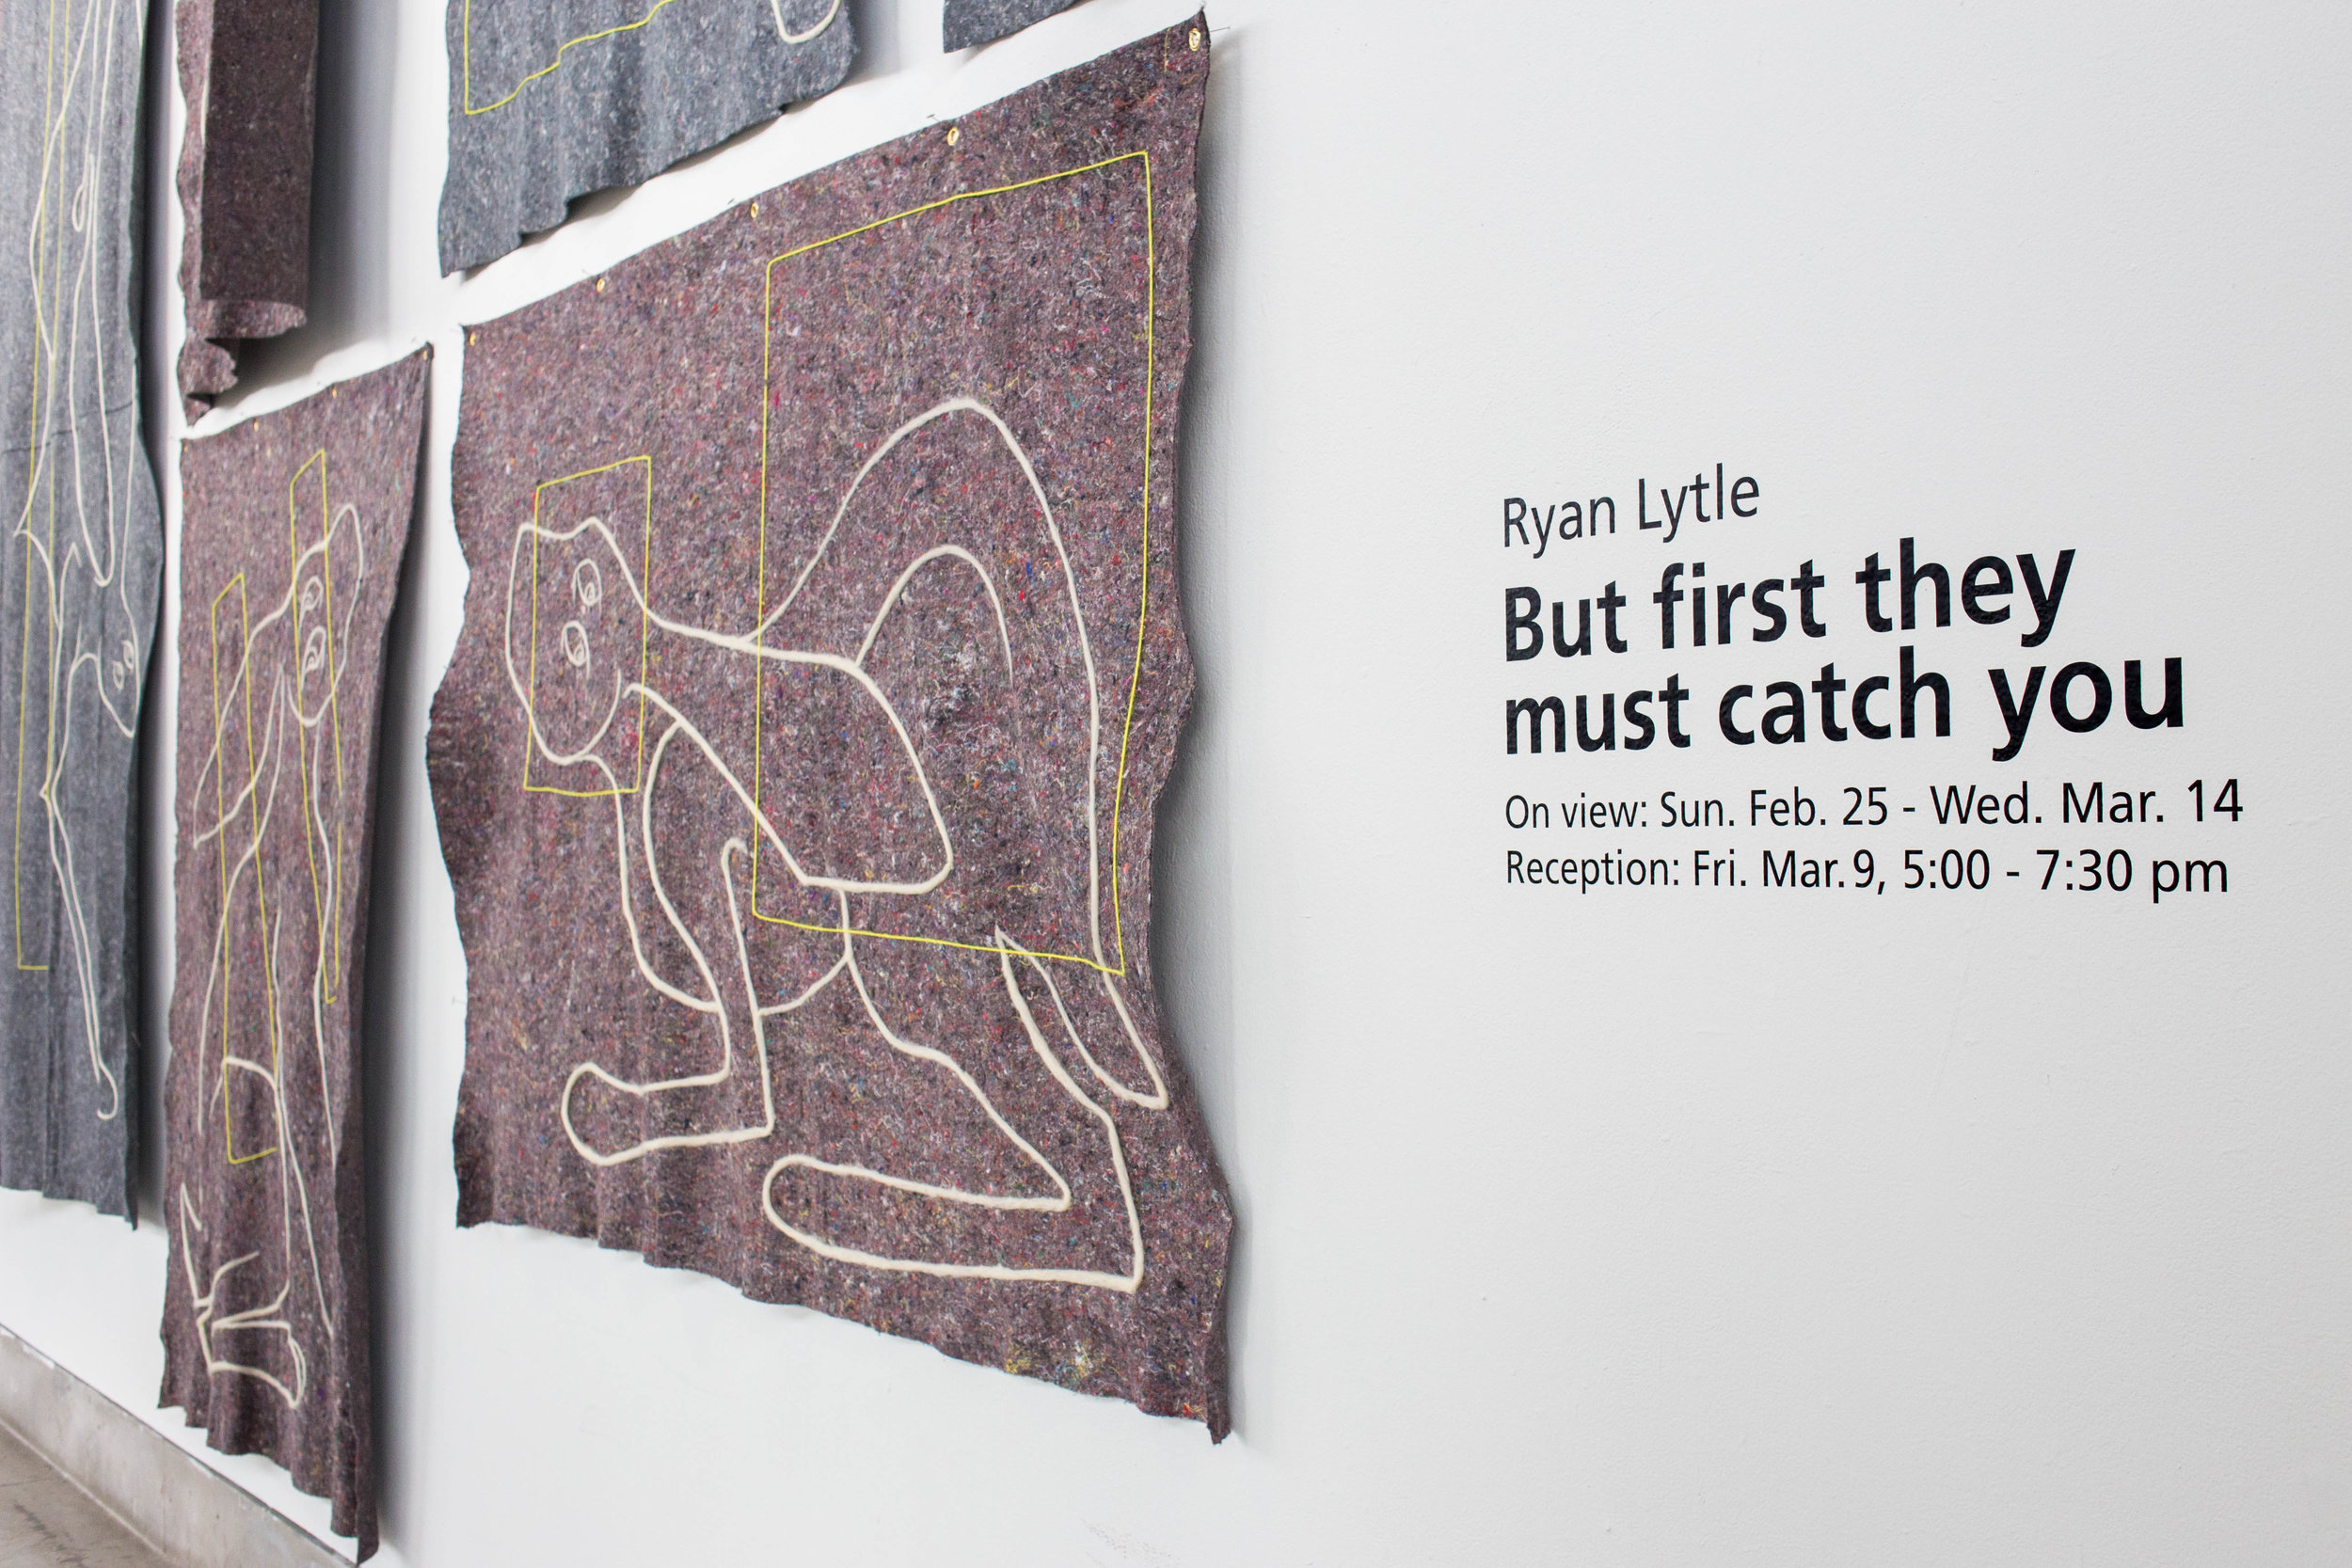 But first they must catch you (installation view)